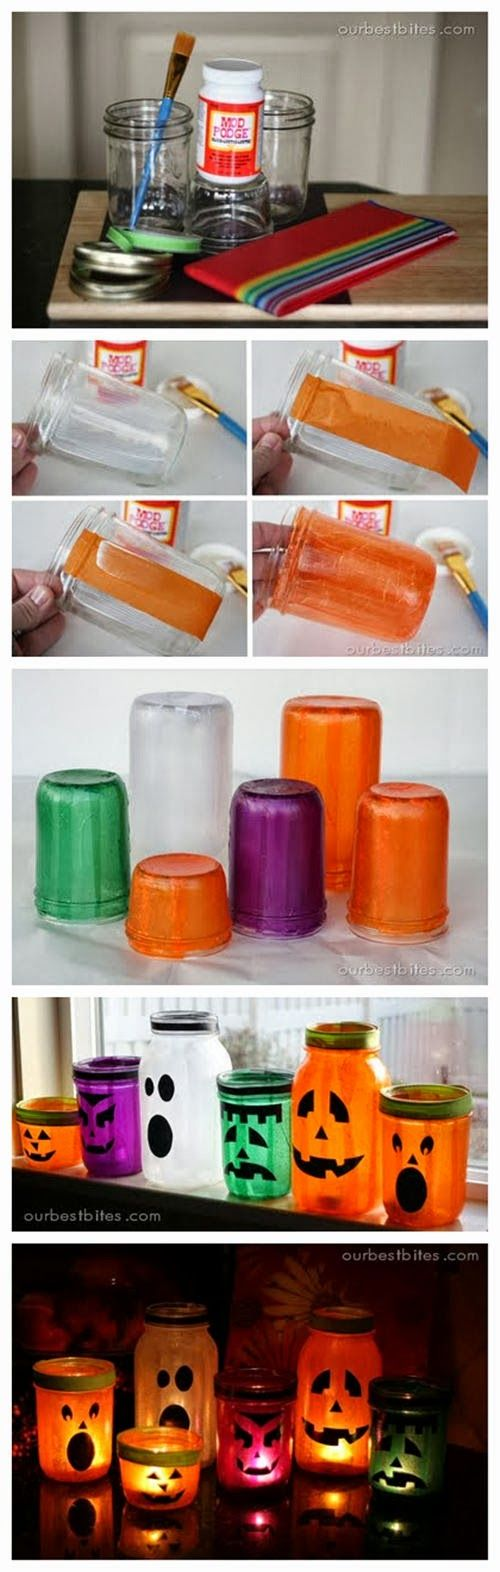 Great mason jar idea - OR just empty jars. #craft on your own! #Mason_Jar_Lanterns